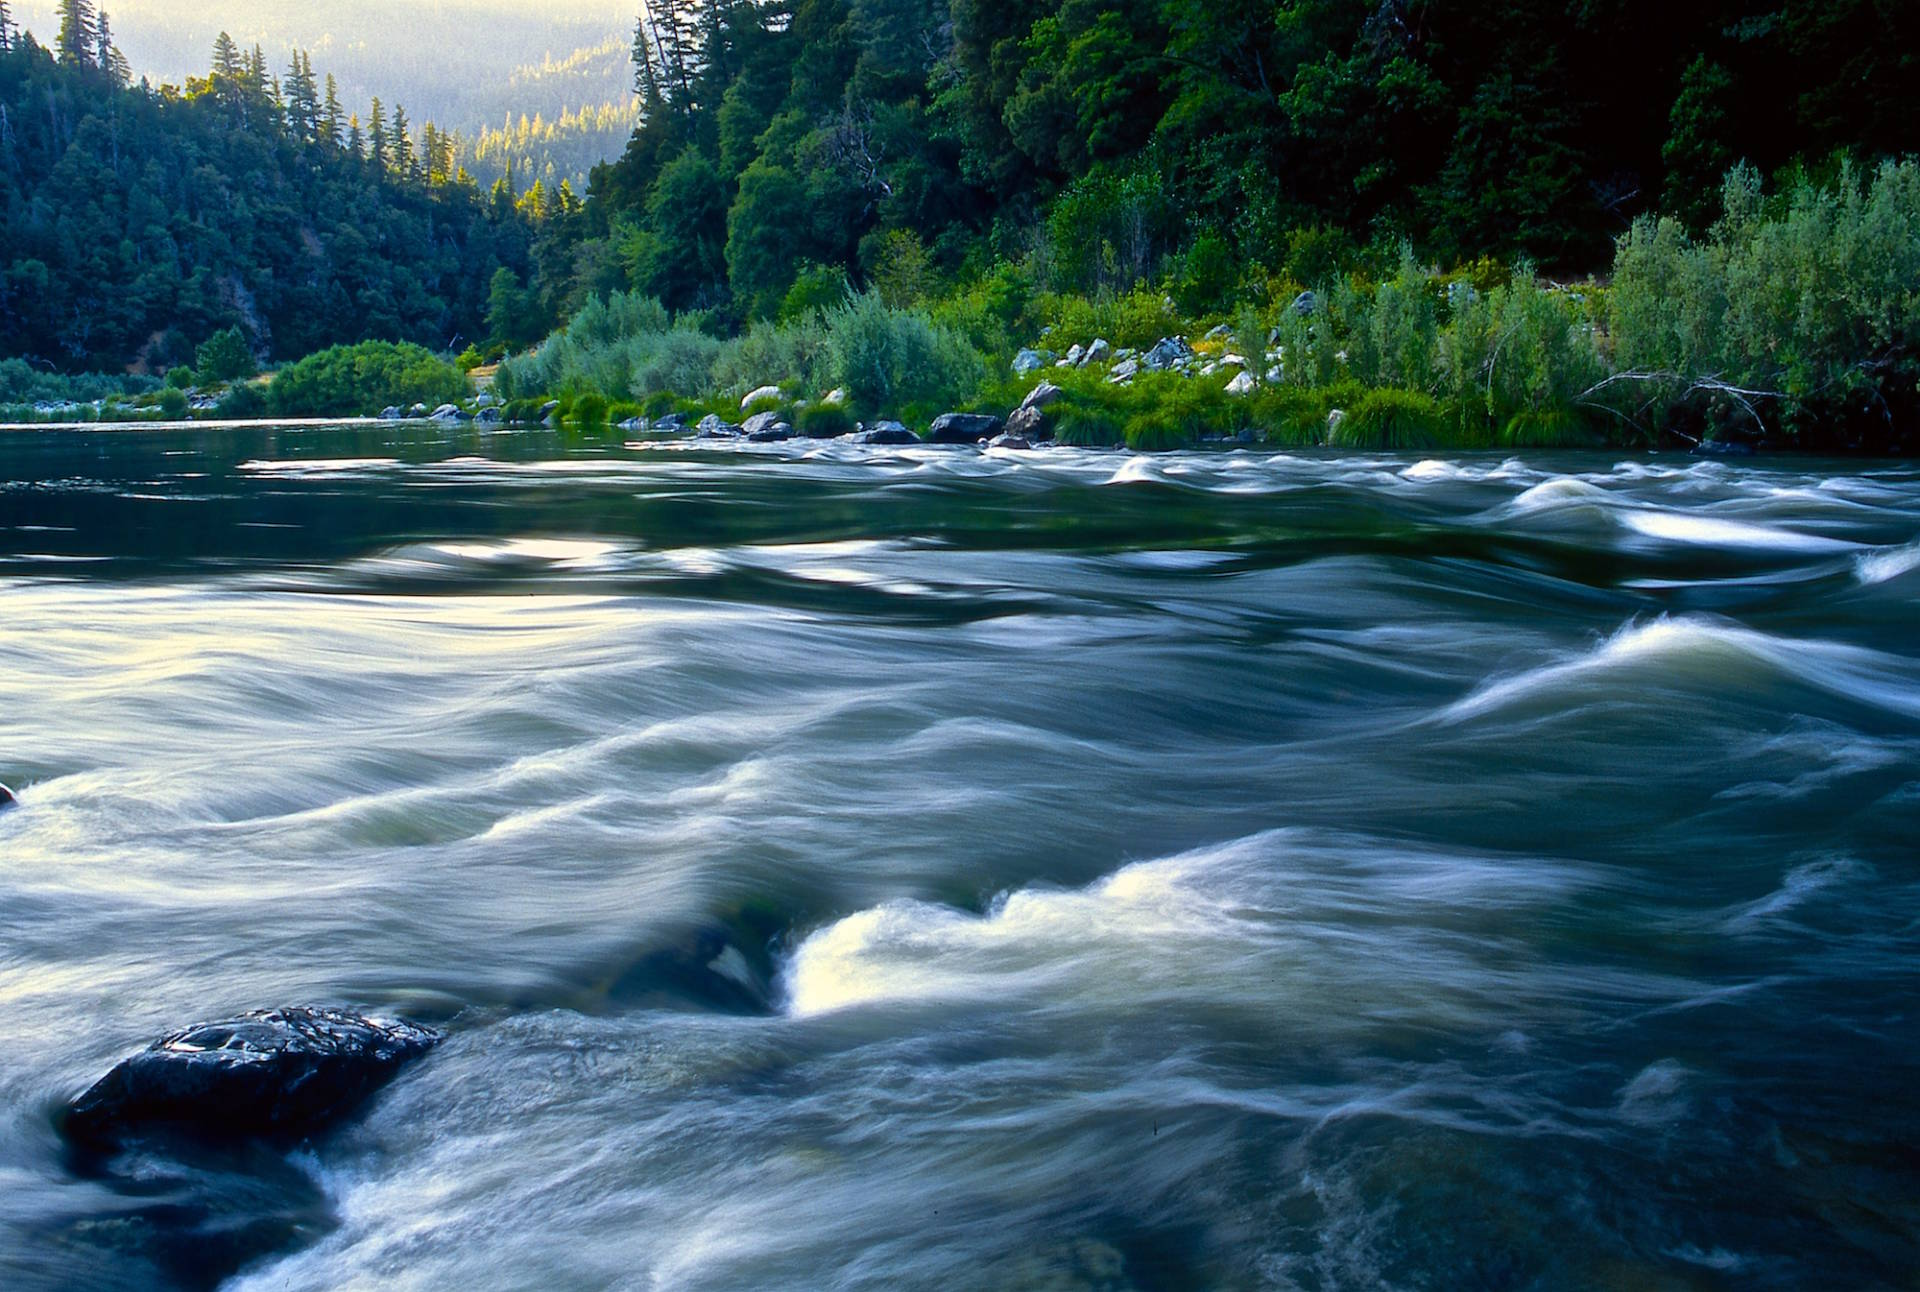 The Klamath River at Eysee Bar, 2003 -- one of the California rivers with federally designated Wild and Scenic portions. Tim Palmer